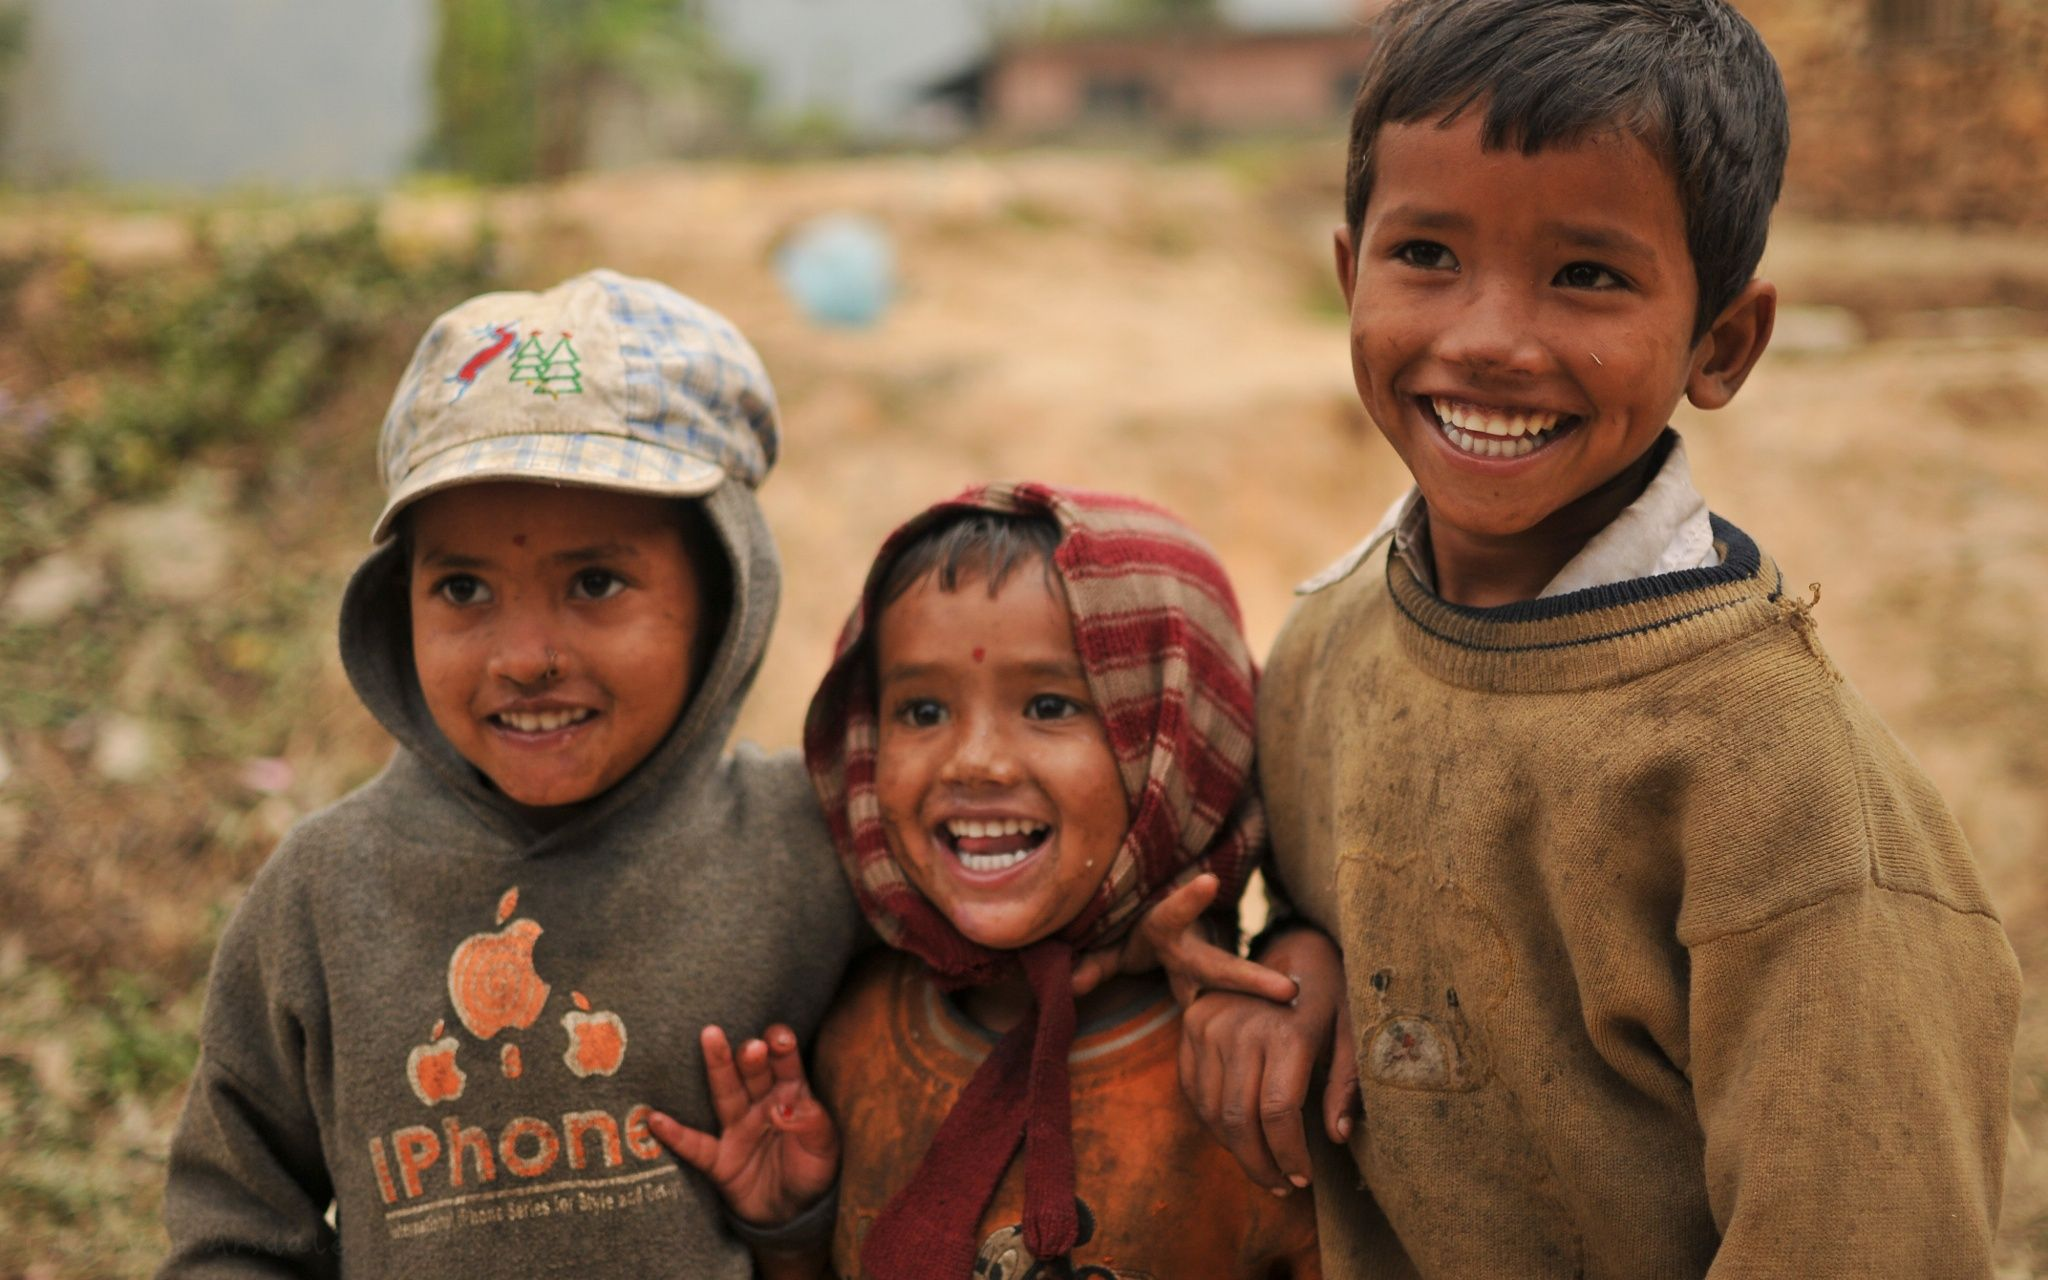 Nepal has become the happiest country in South Asia